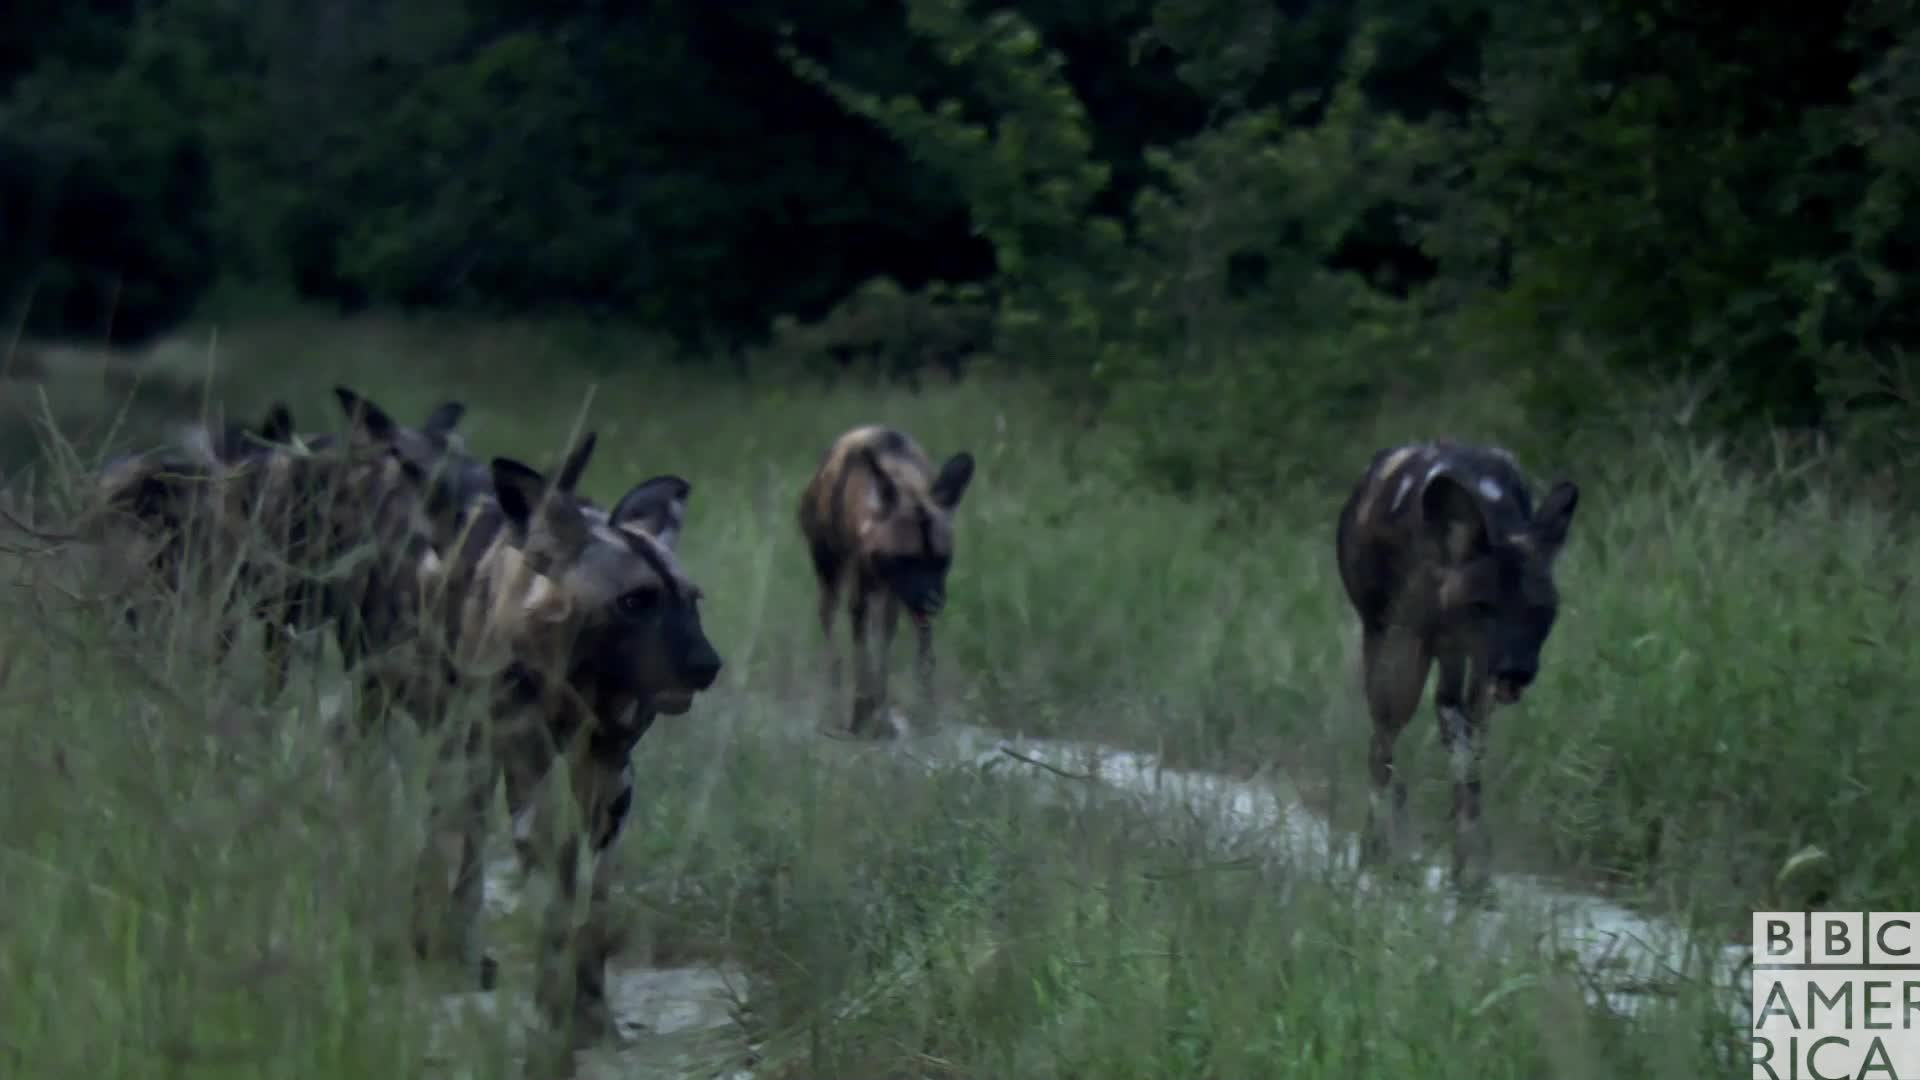 animal, animals, bbc america, bbc america dynasties, bbc america: dynasties, dynasties, friends, let's go, let's leave, painted wolf, painted wolves, squad, swag, wolf, wolf pack, wolves, Dynasties Wolf Pack GIFs